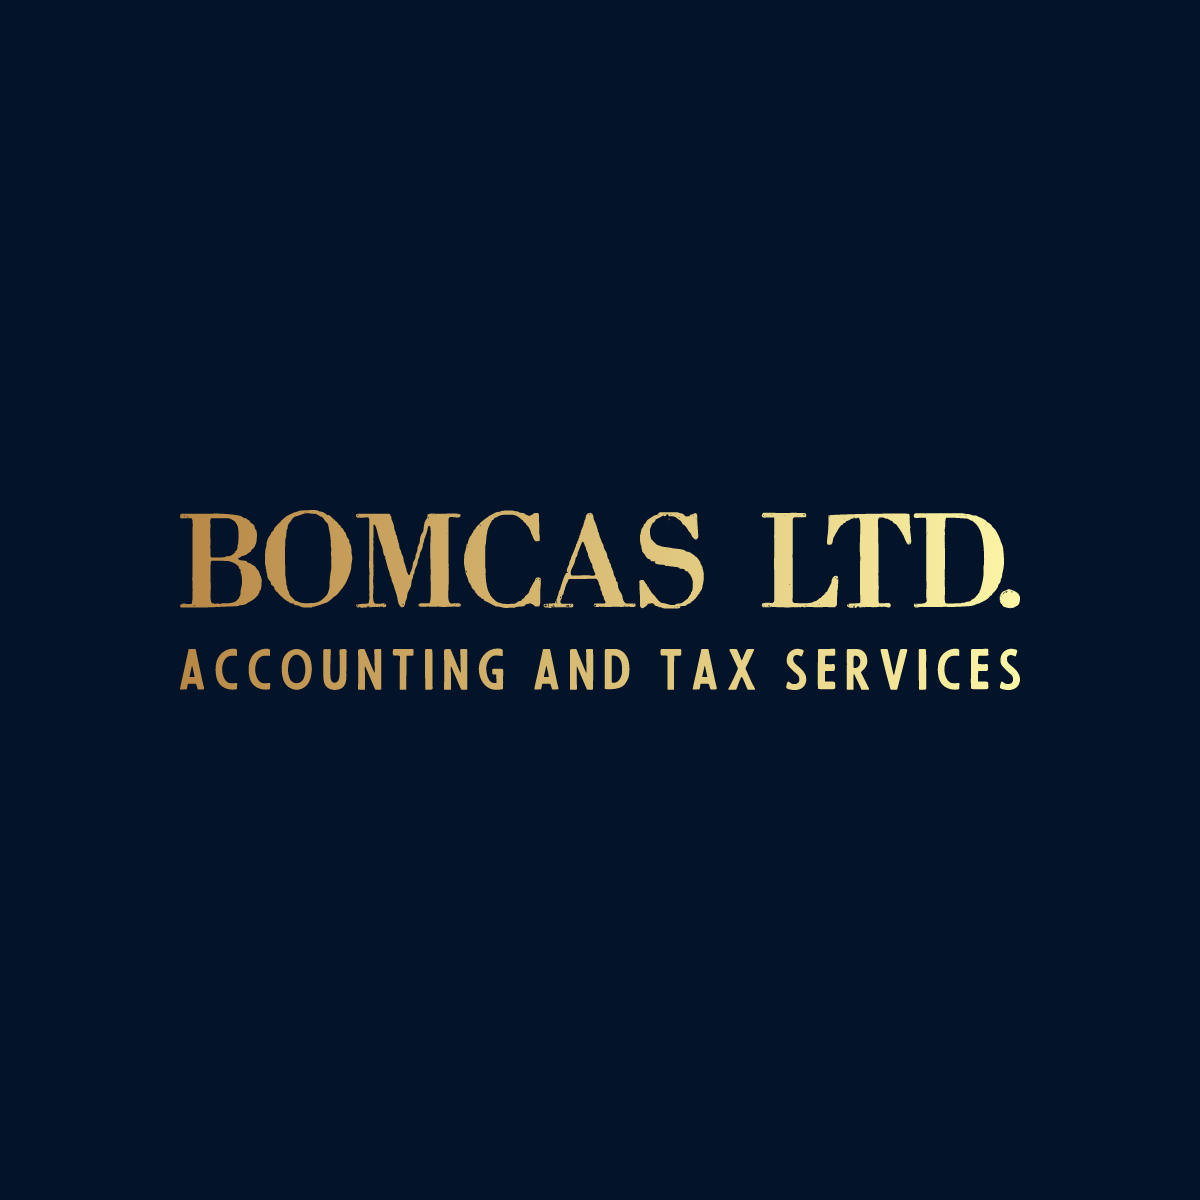 BOMCAS LTD. Edmonton Accounting and Tax Services